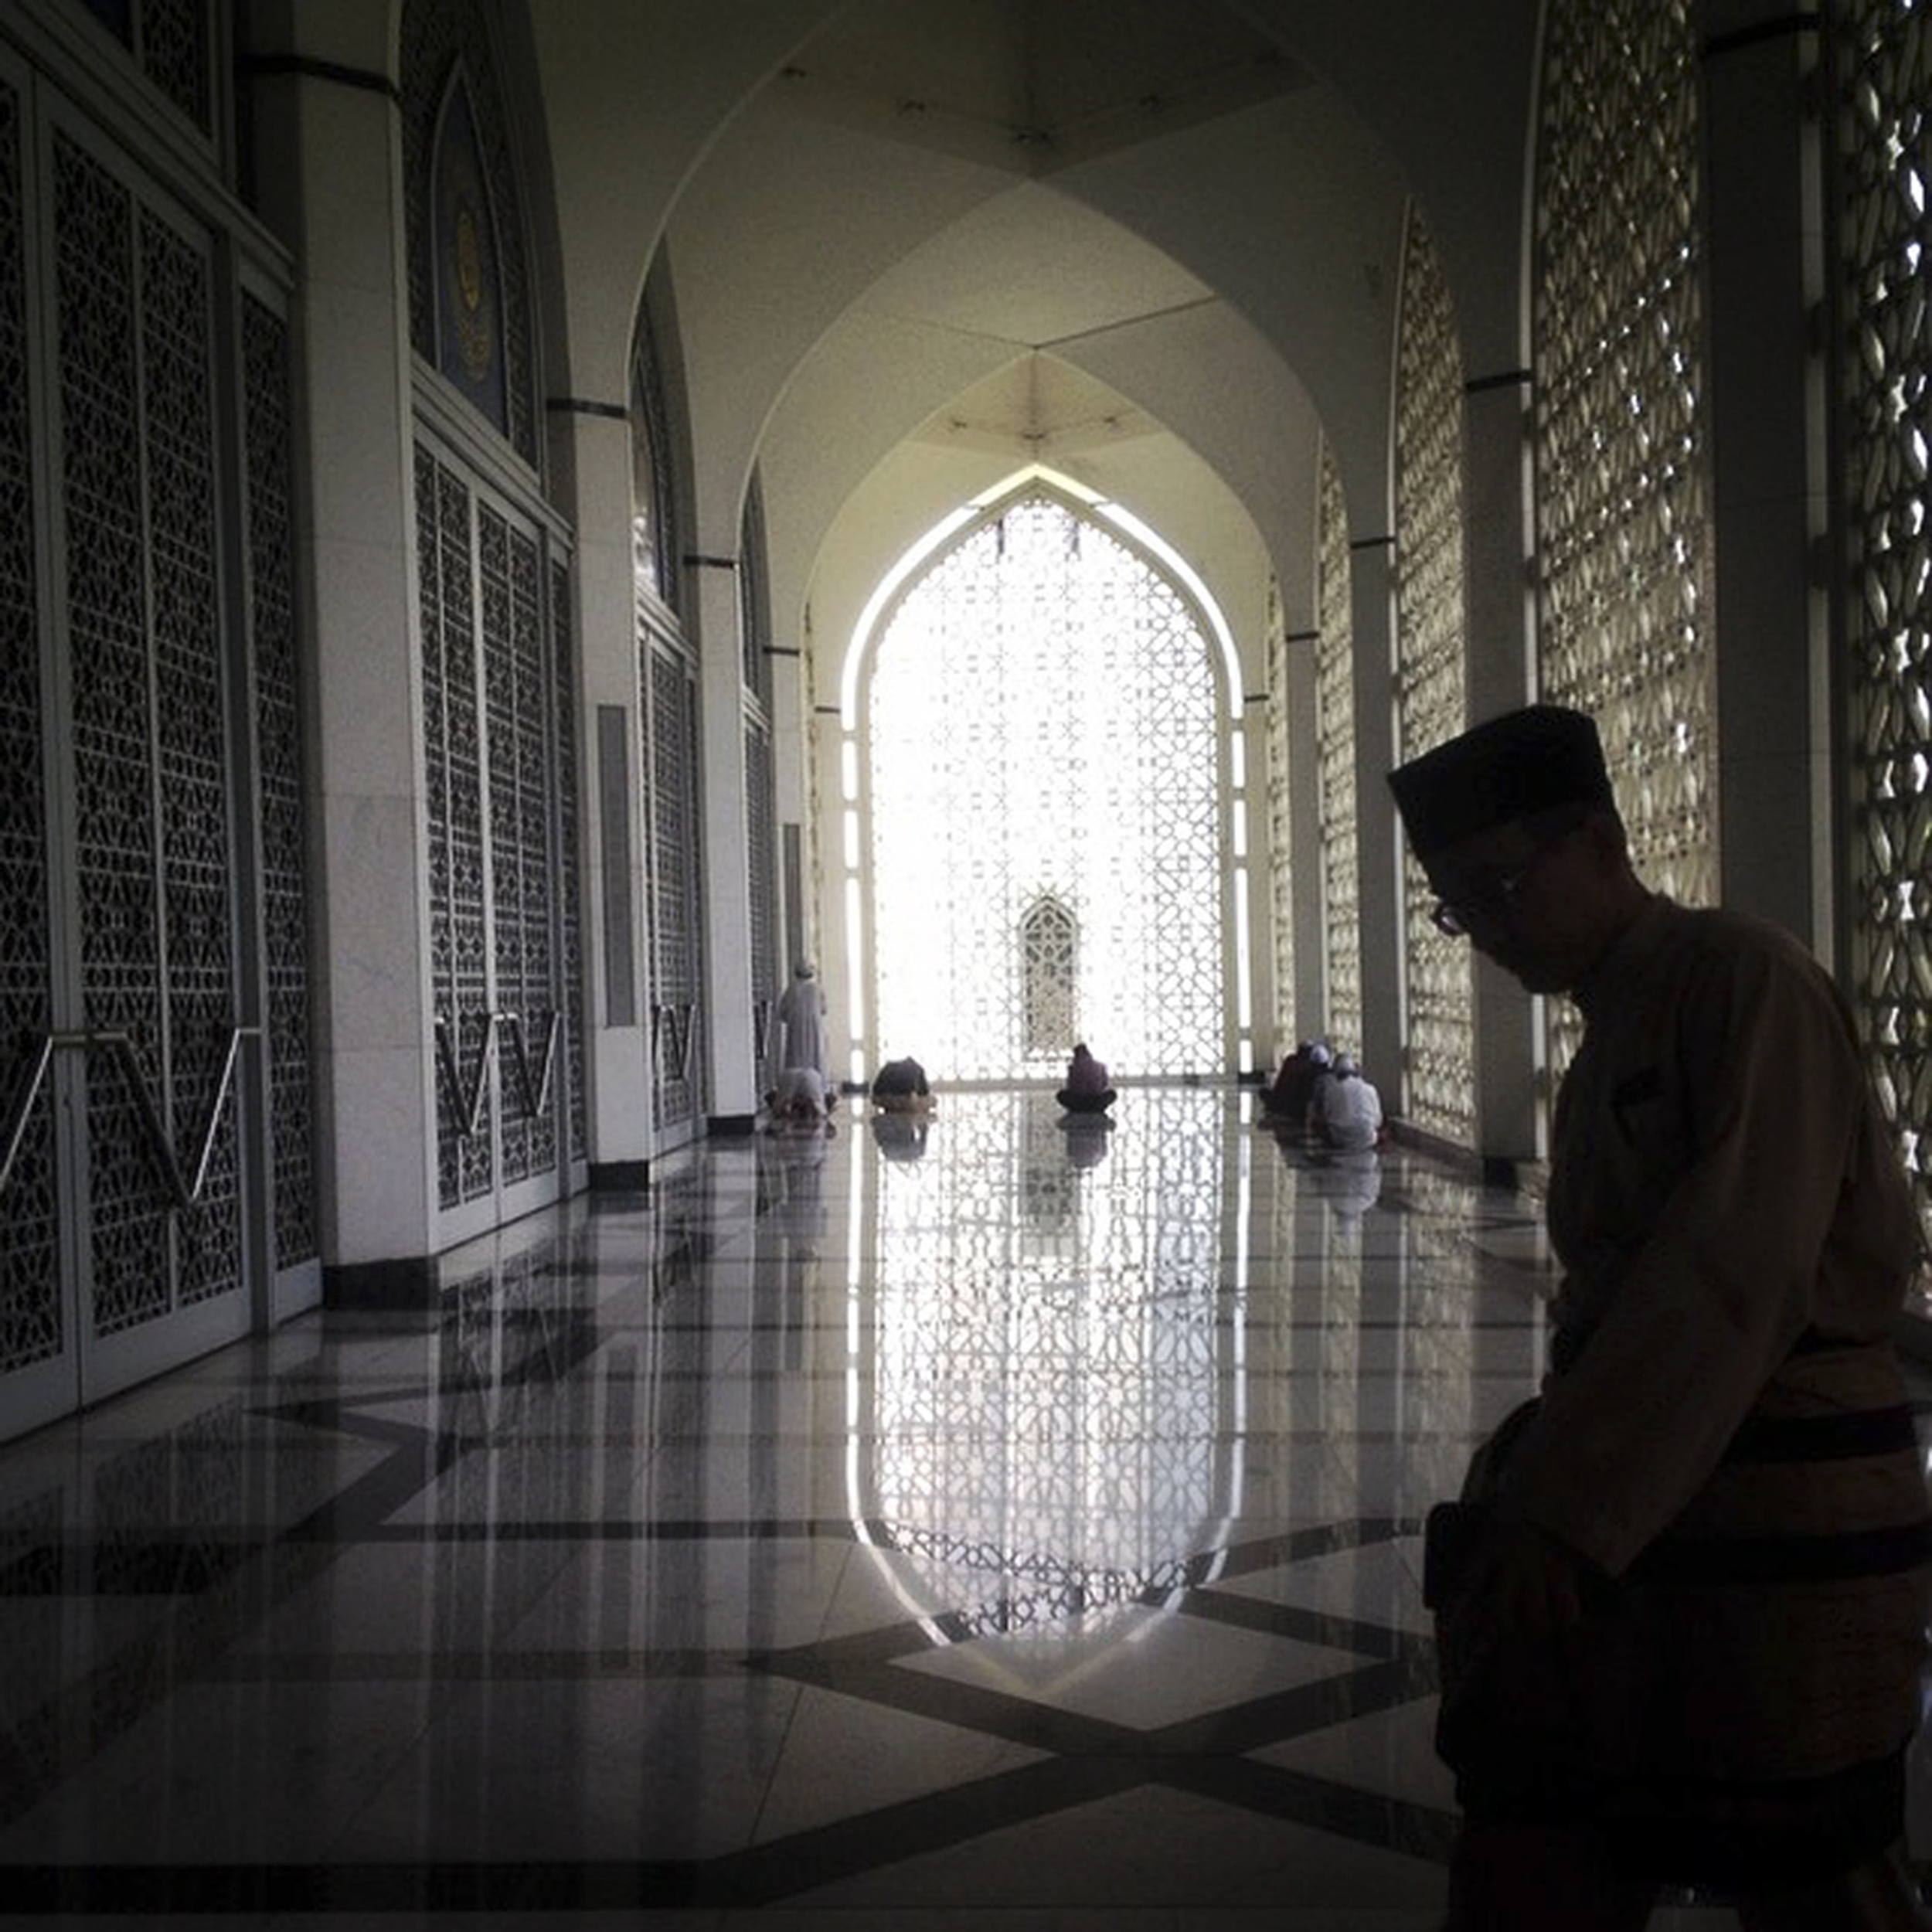 Malaysian Muslims during Jum'ah Prayer at Sultan Salahuddin Abdul Aziz Mosque at Shah Alam, outside Kuala Lumpur, Malaysia. Jum'ah is a congregational prayer that Muslims hold every Friday. (Zulfadhli Zaki)